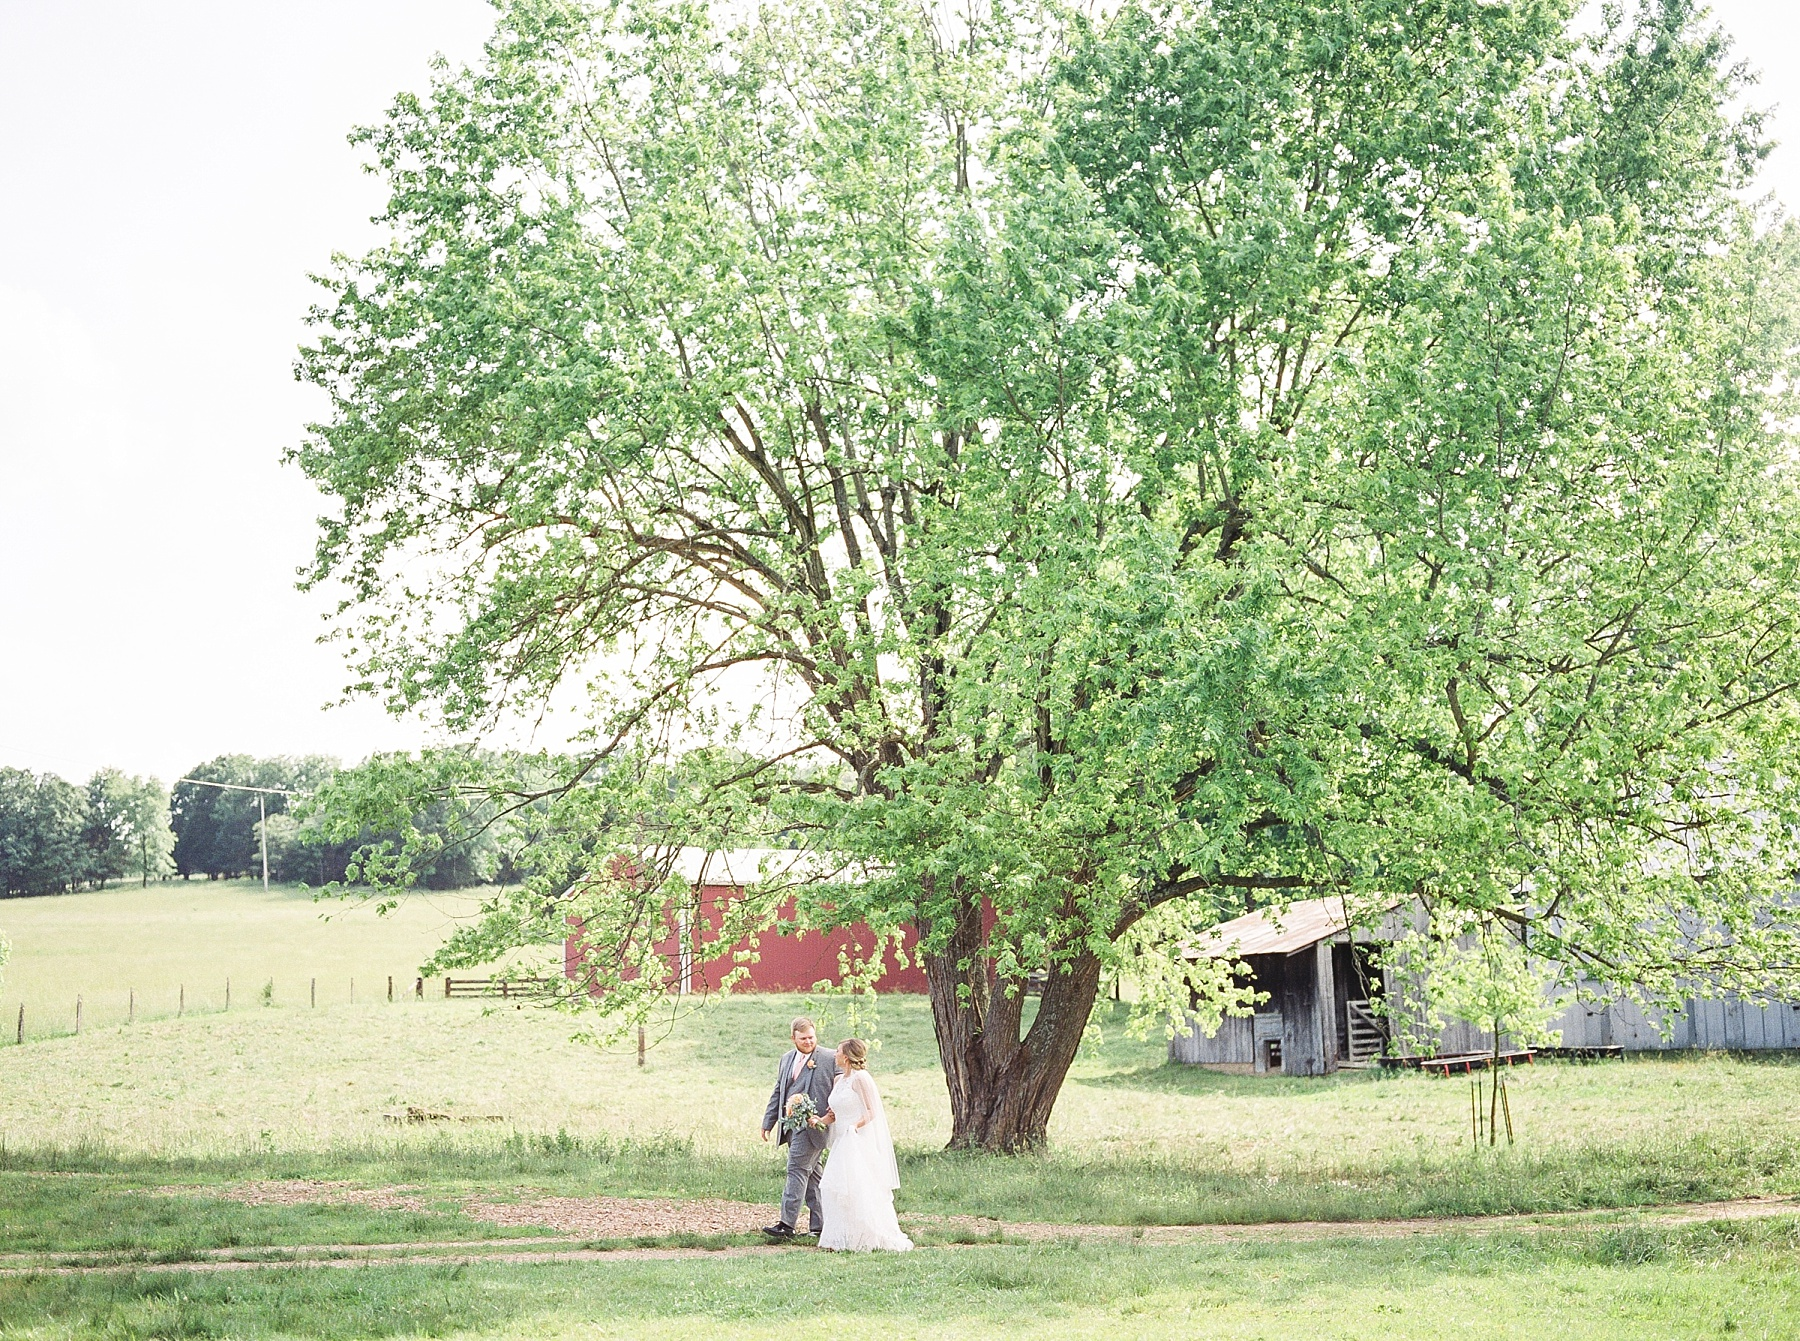 Peach and Dusty Blue Spring Wedding in Rolling Hills of Mid Missouri by Kelsi Kliethermes Photography Best Missouri and Maui Wedding Photographer_0026.jpg